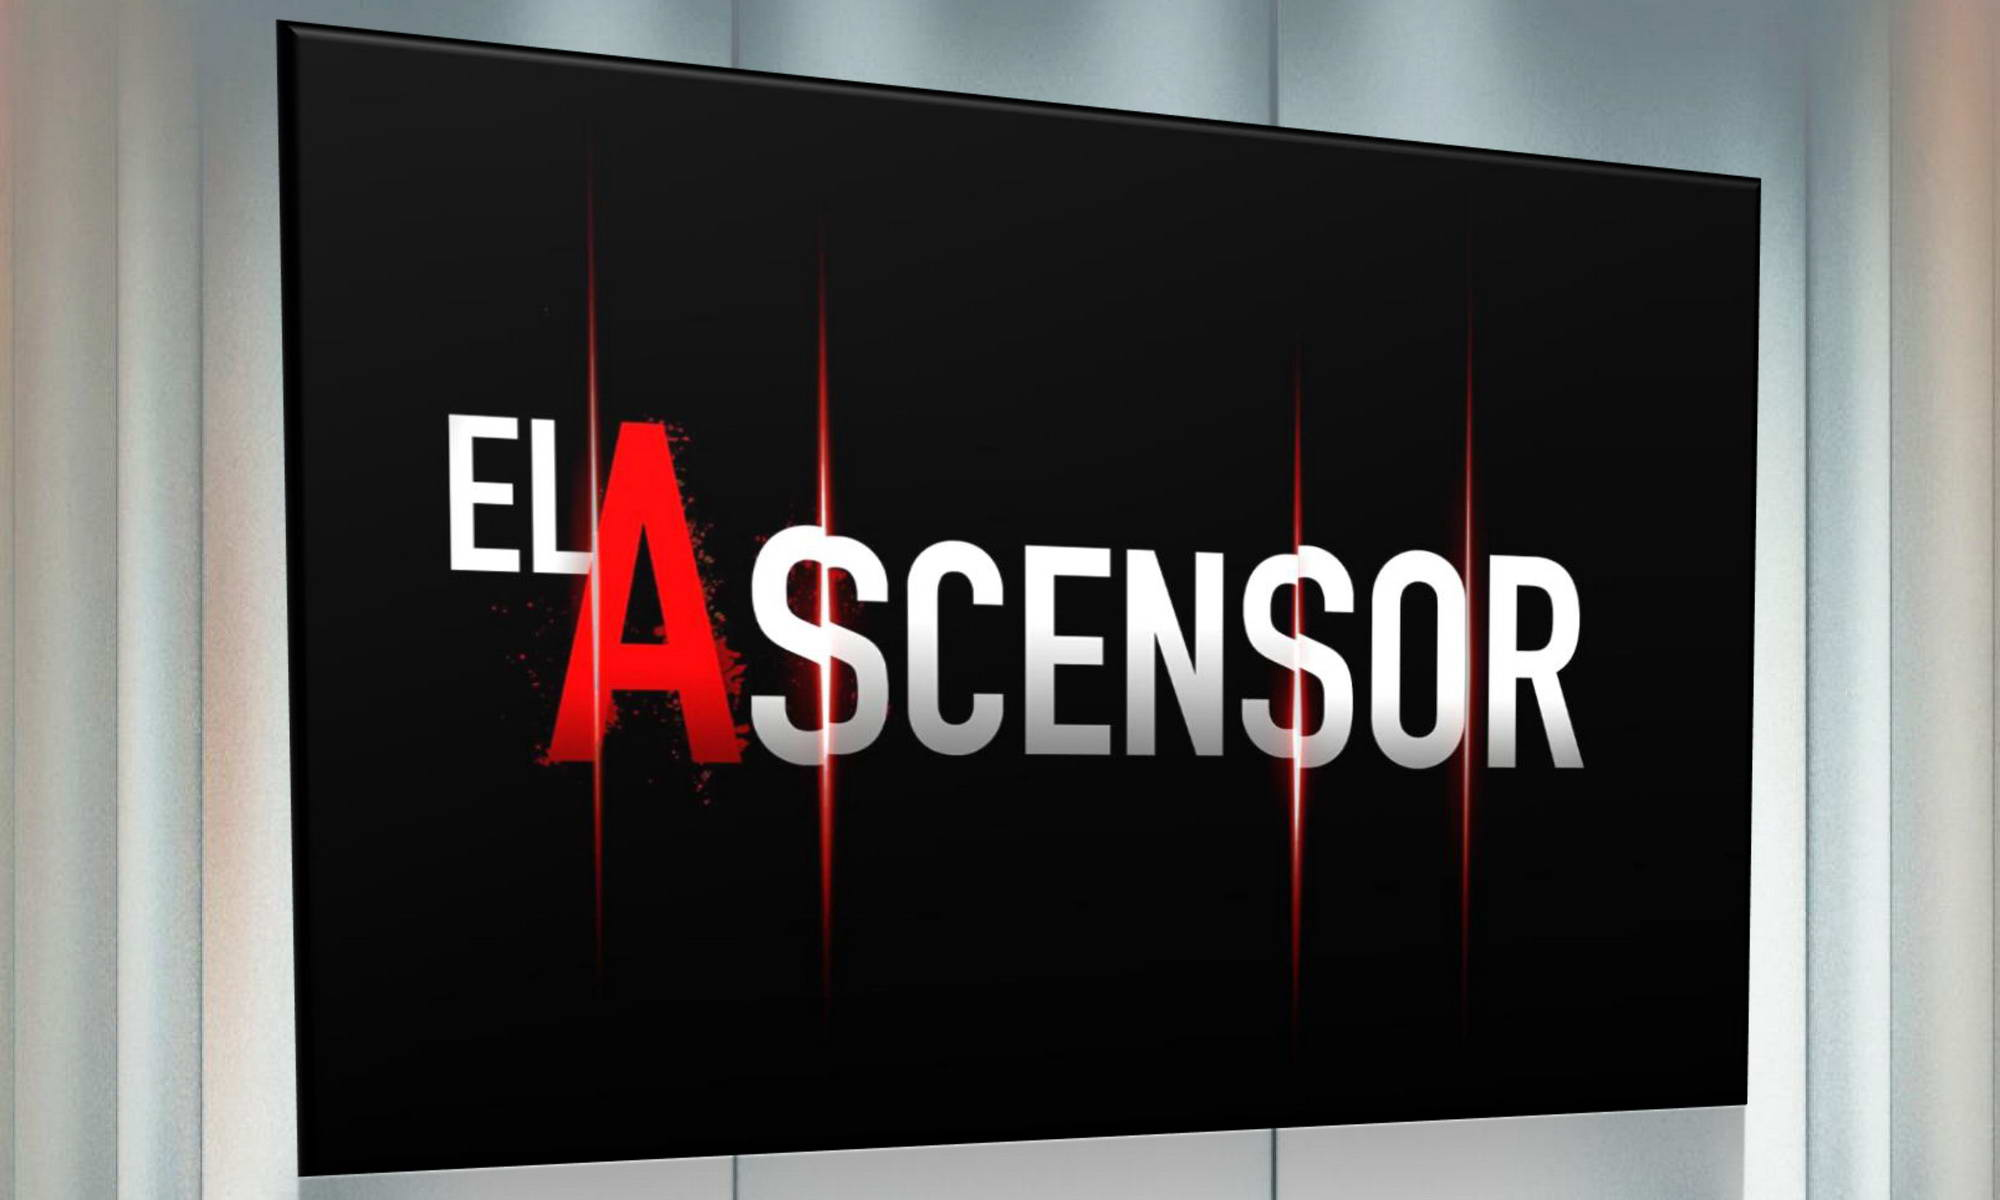 El Ascensor - Teatro